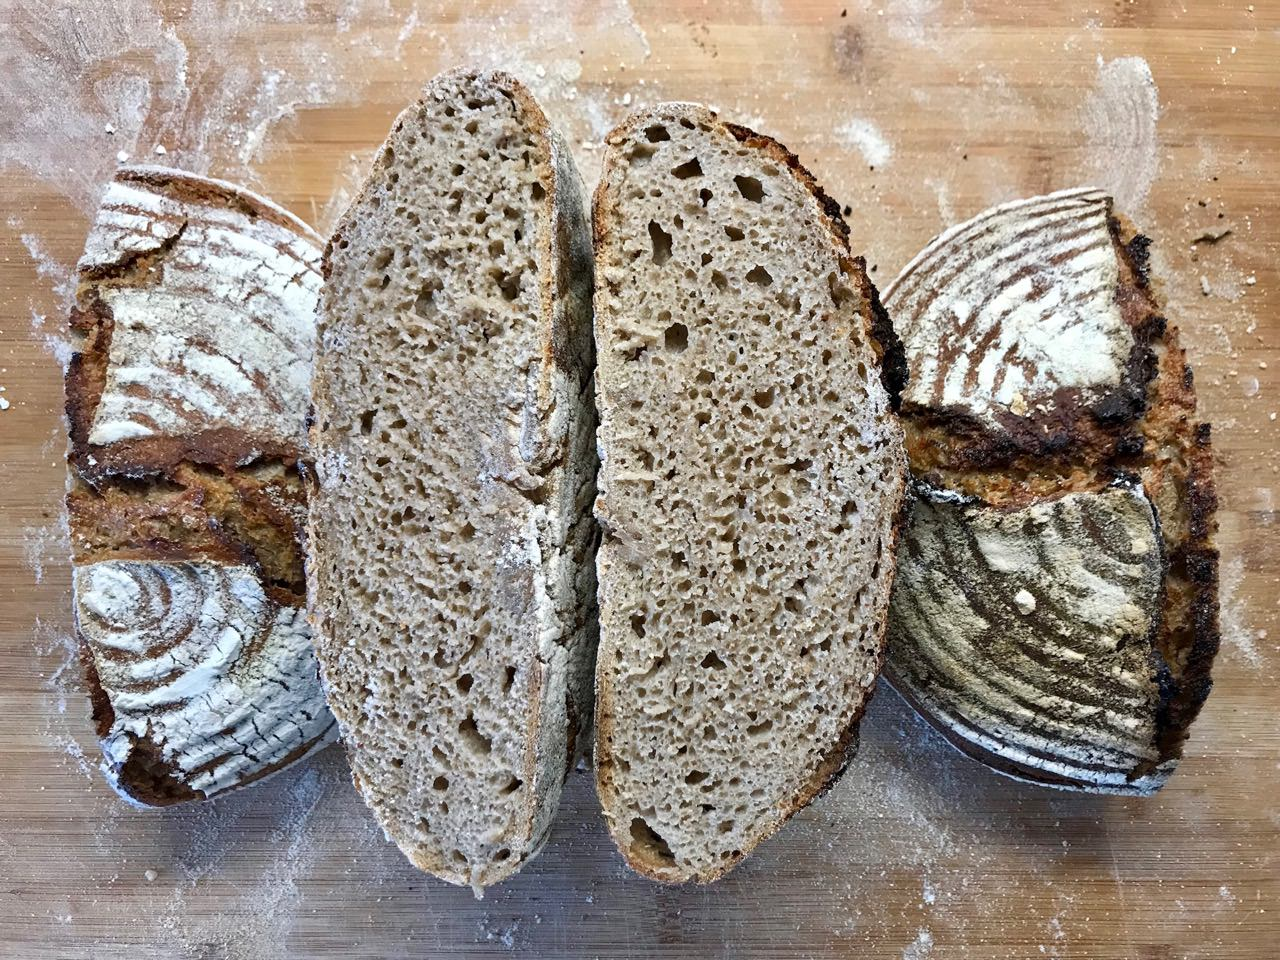 A nice and yummy sourdough bread